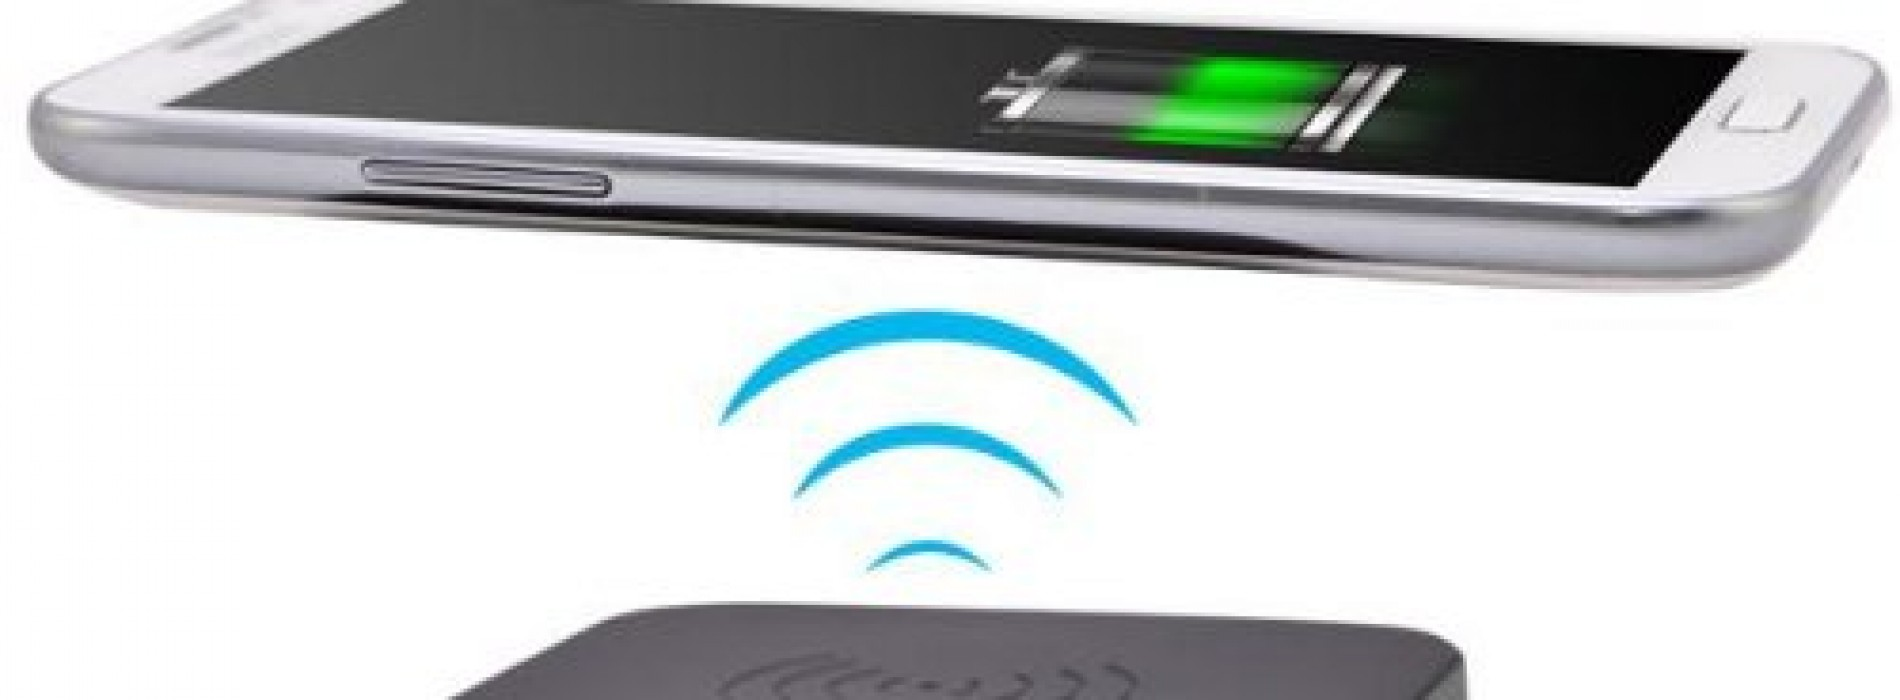 CHOE Qi Wireless Charger Charging Pad only $29.99